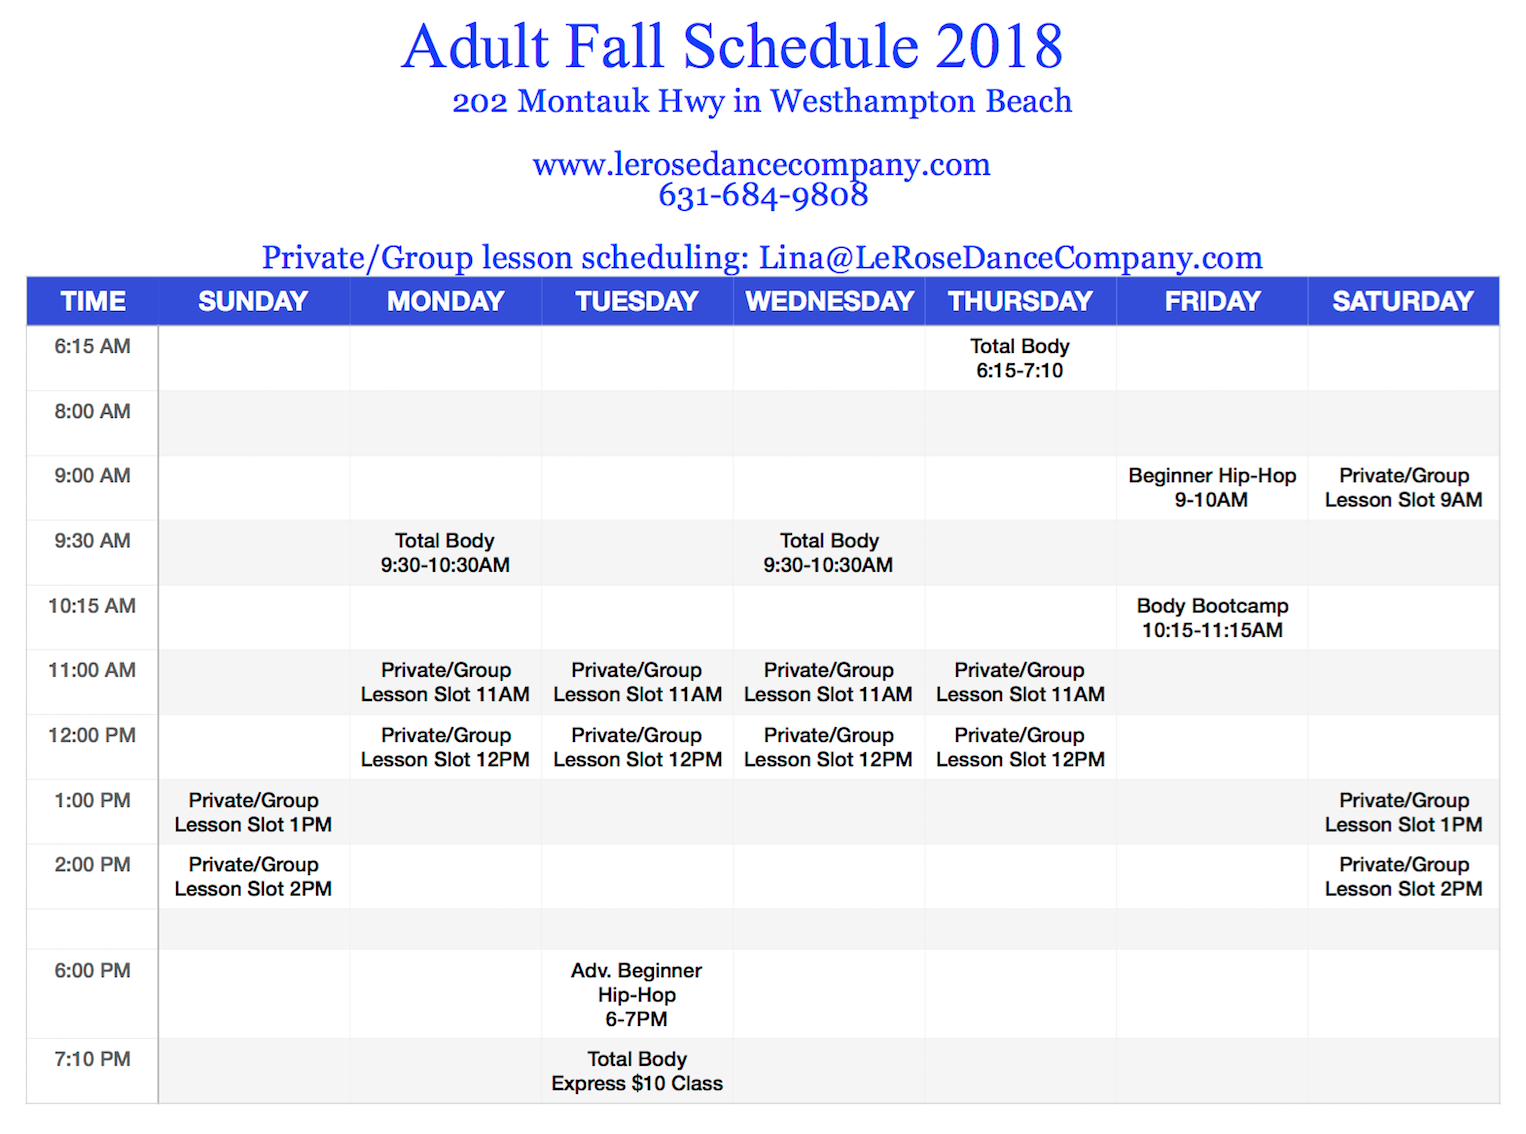 Adult Fall & Winter Schedule 2018-19